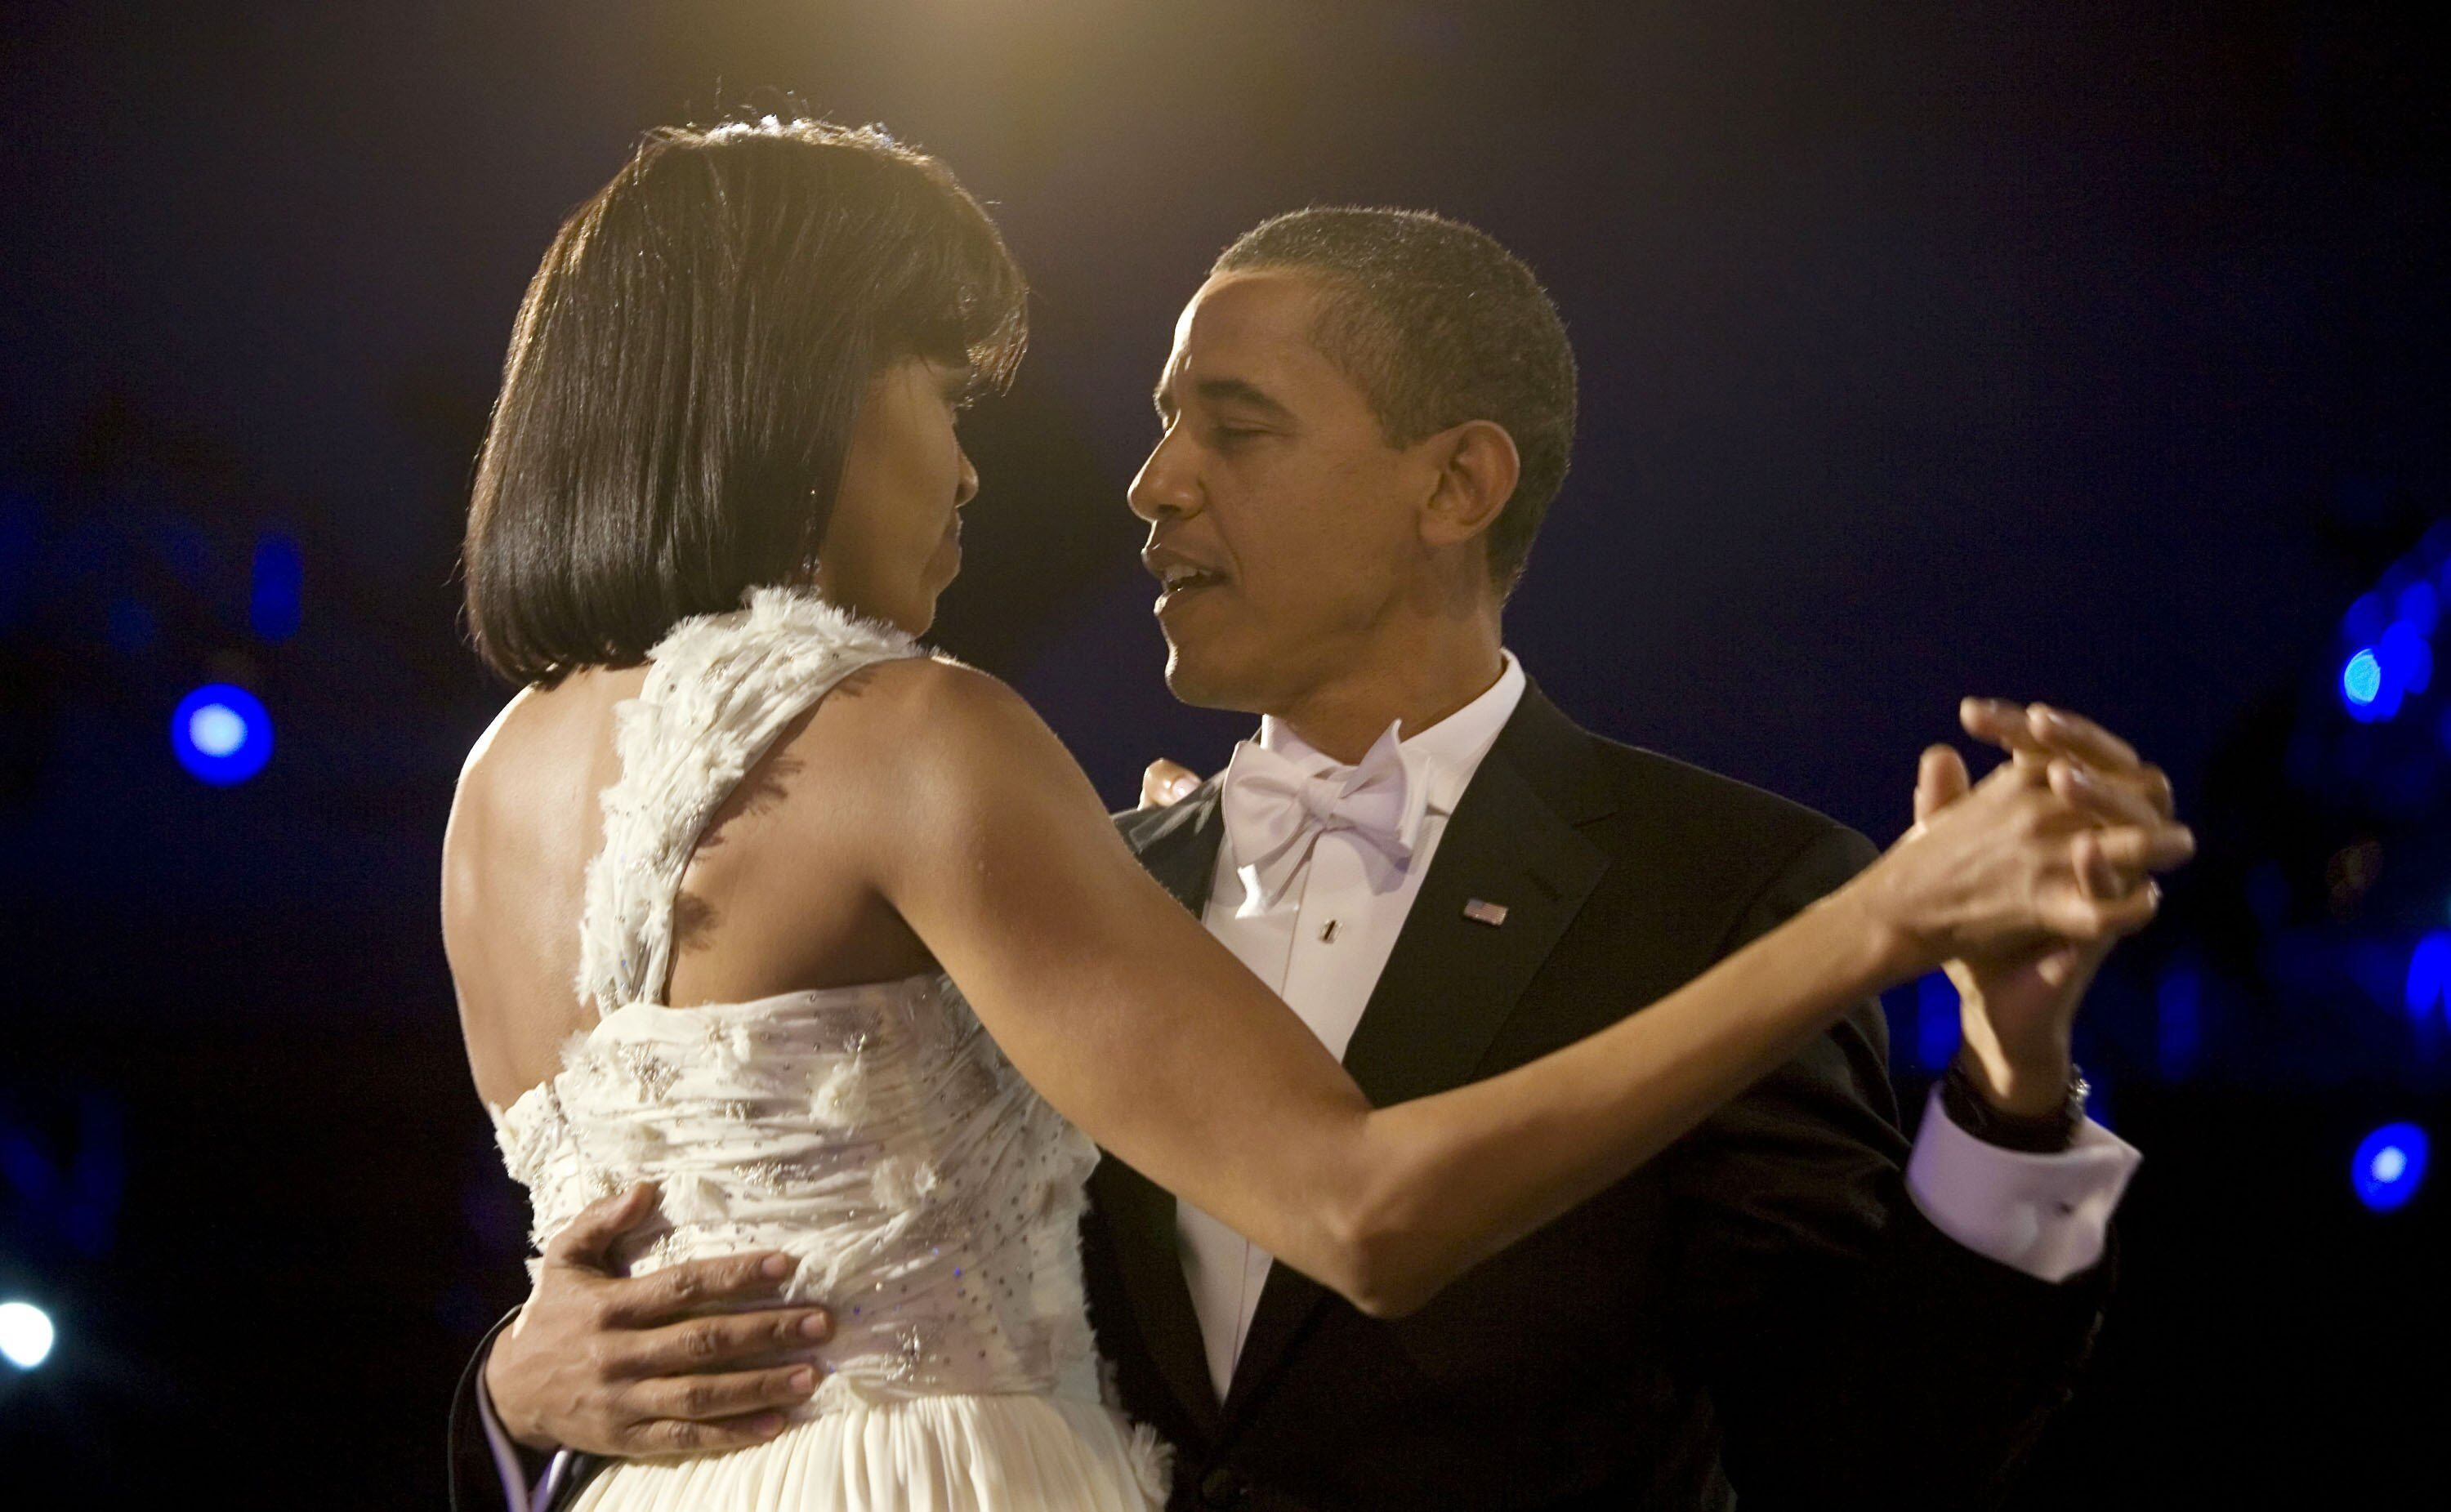 Barack and Michelle Obama at the Presidential Inaugural Ball/ Source: Getty Images